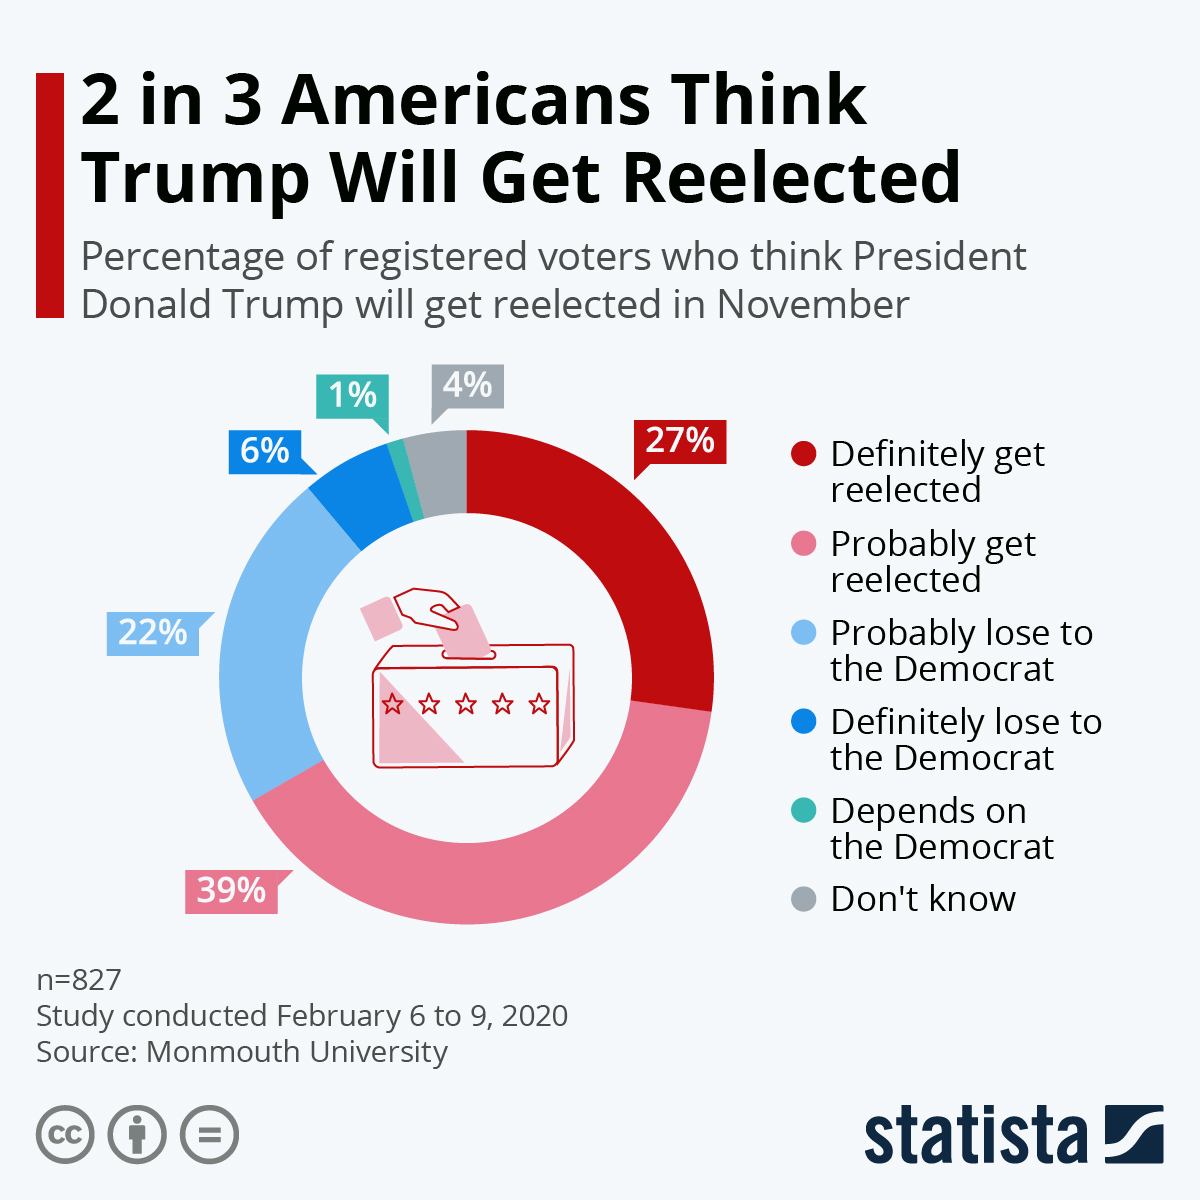 Infographic: 2 in 3 Americans Think Trump Will Get Reelected | Statista